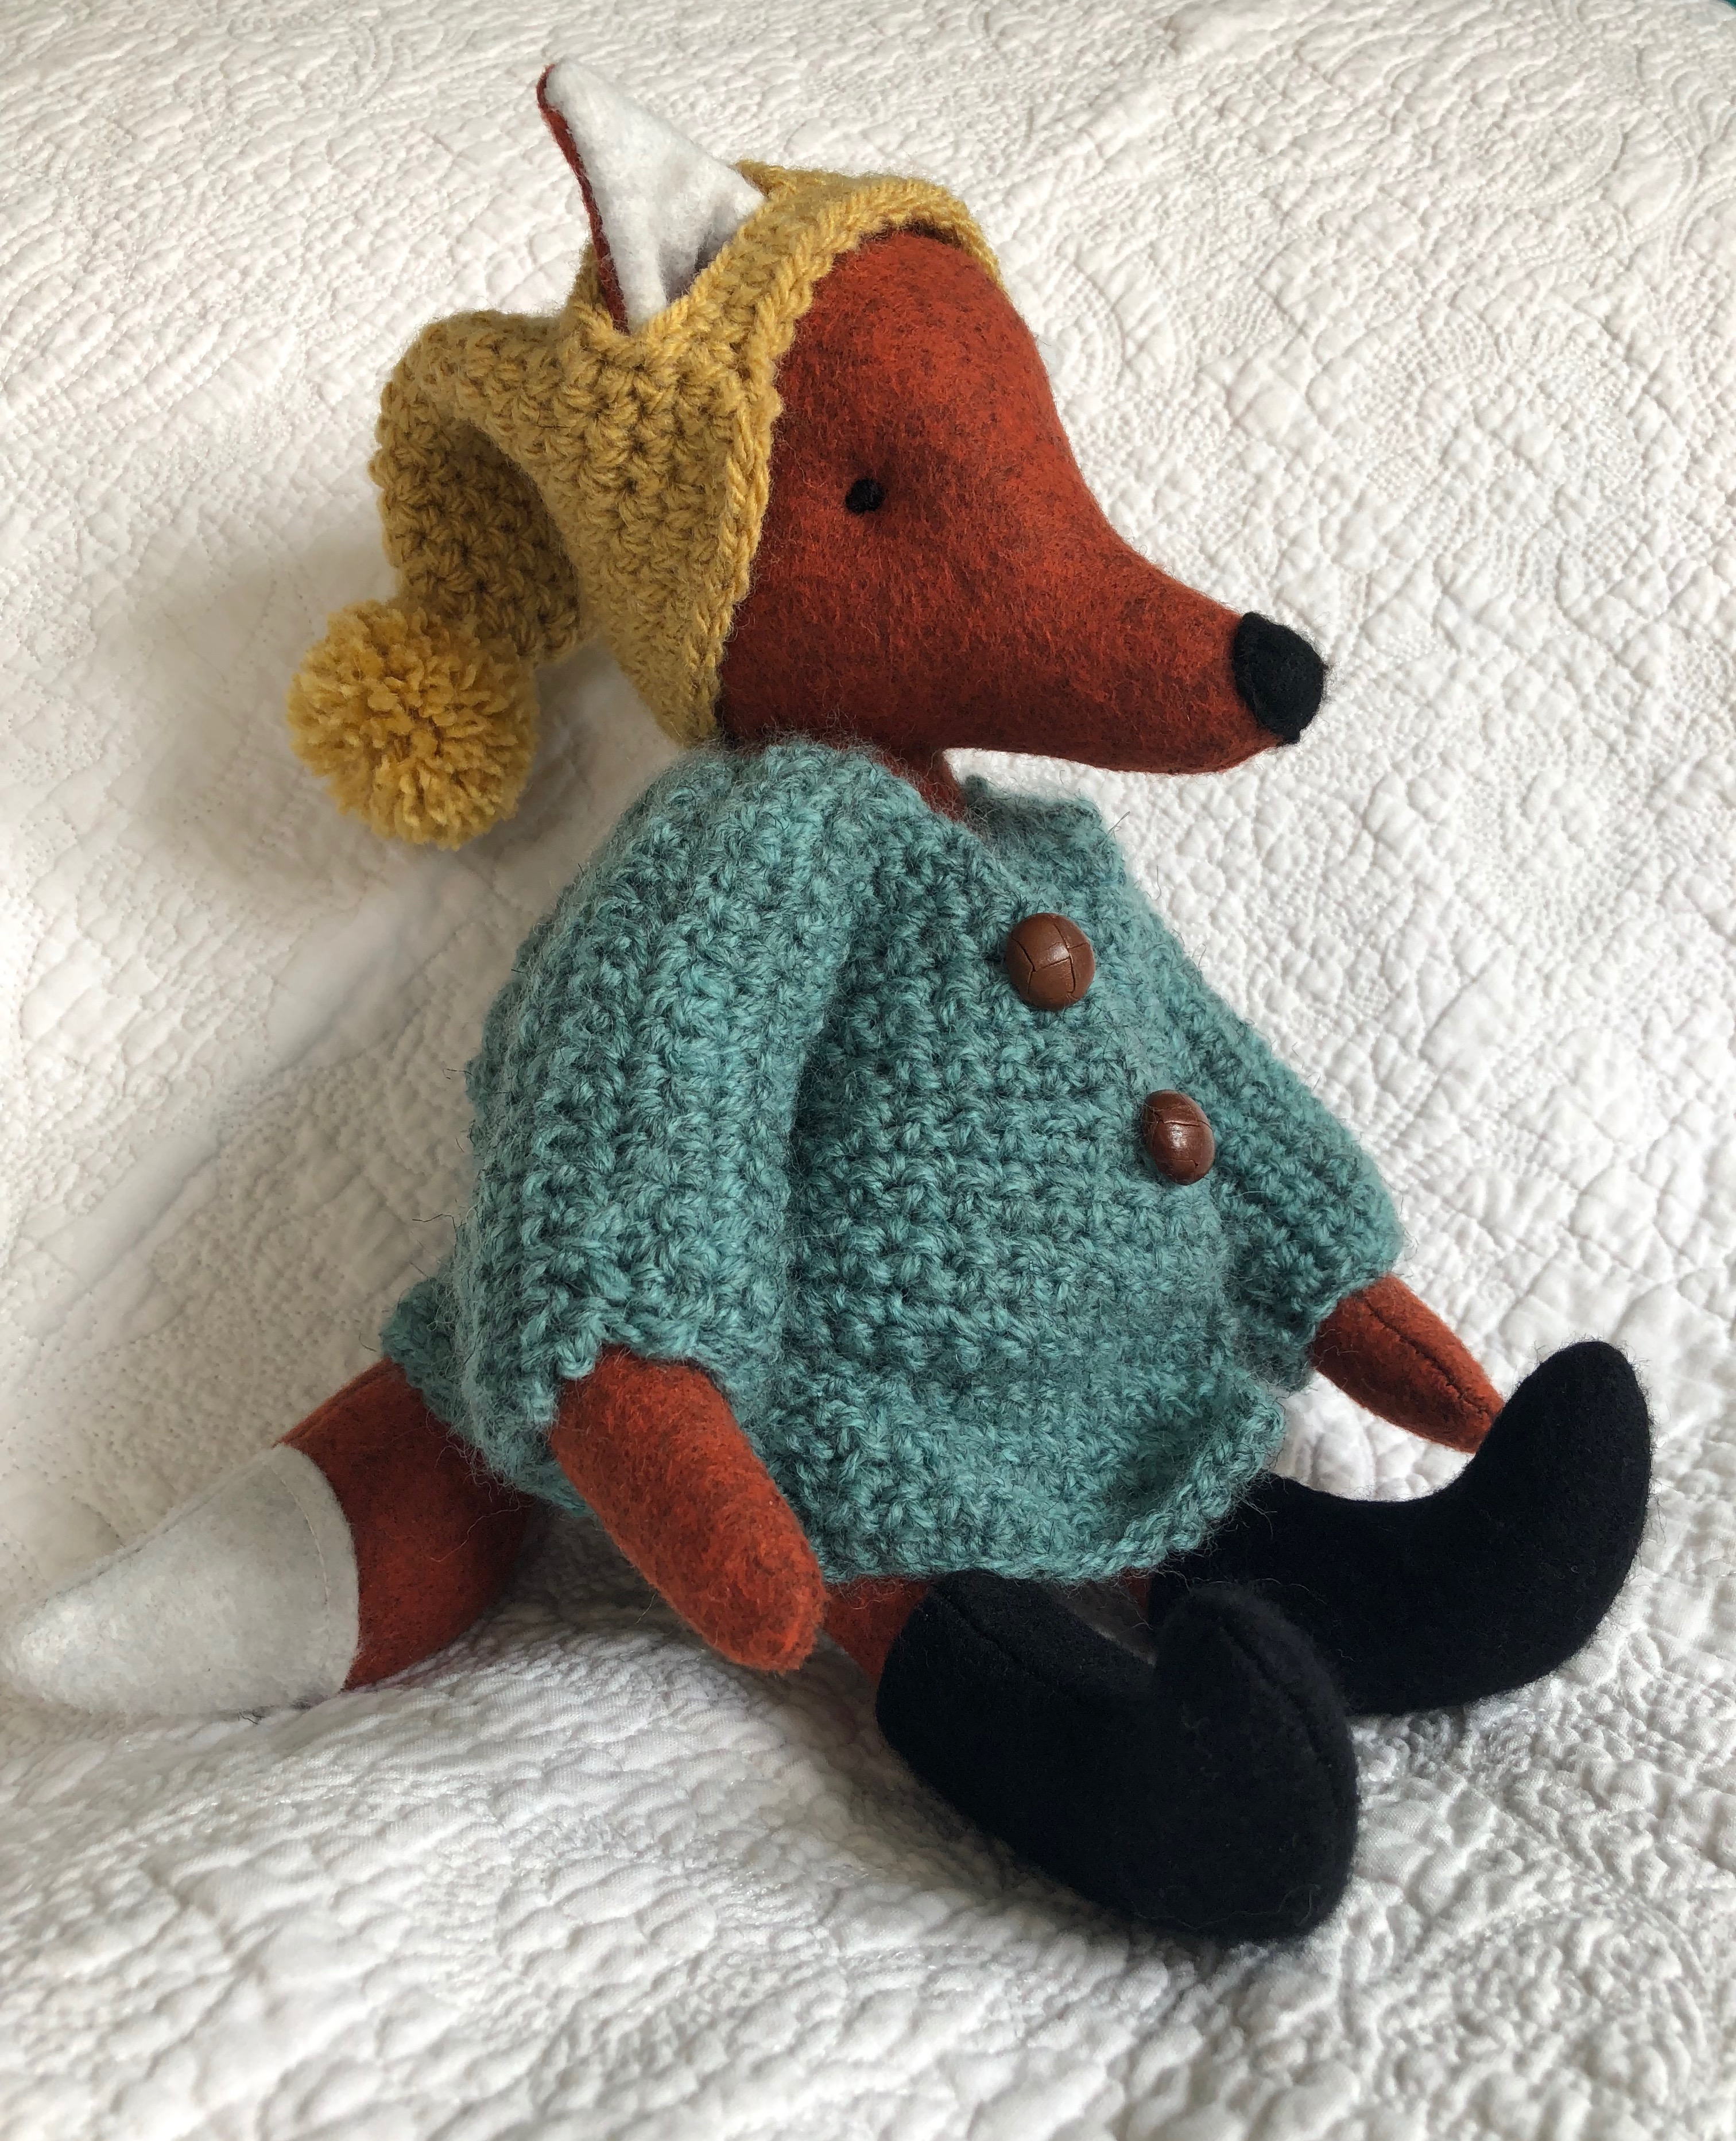 A handmade rusty brown felt fox with a green hand crocheted jacket, mustard yellow bobble hated little black felt boots. Fox pattern by Simone Gooding, crocheted clothes designed and made by me.